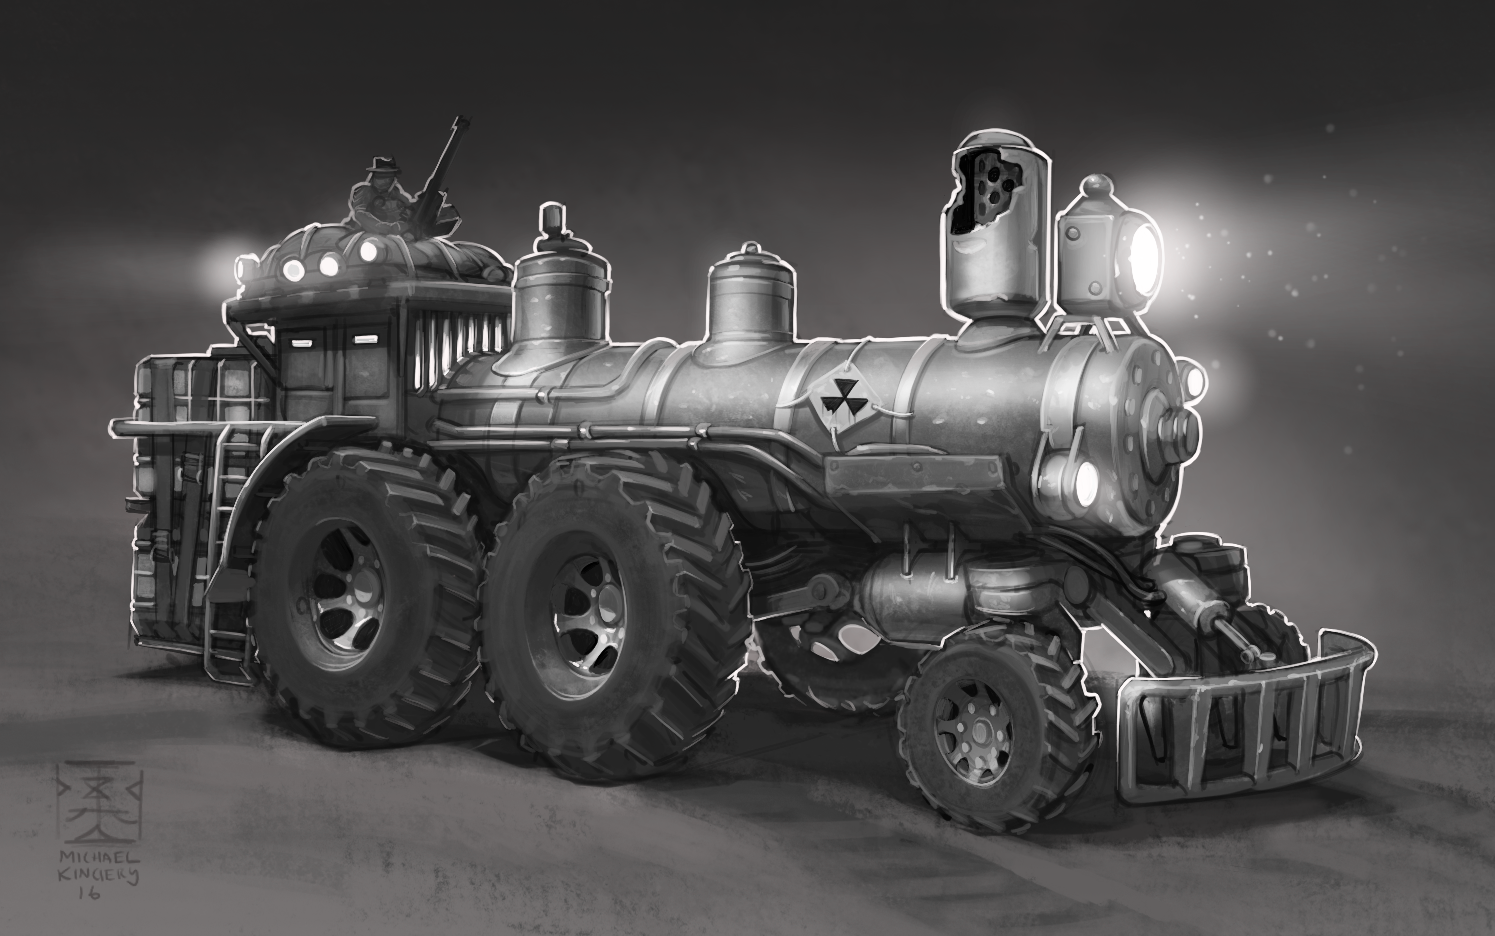 Jumped from some rough bones paintover of a train image into this without much time spent fixing wheel perspective. I was also using Procreate on the iPad pro so no fancy elipse tools im afraid. I think this design is far more appealing than the two other versions below visually, but the engineer inside me really wants a more capable looking turning solution besides the two front wheels being on casters...